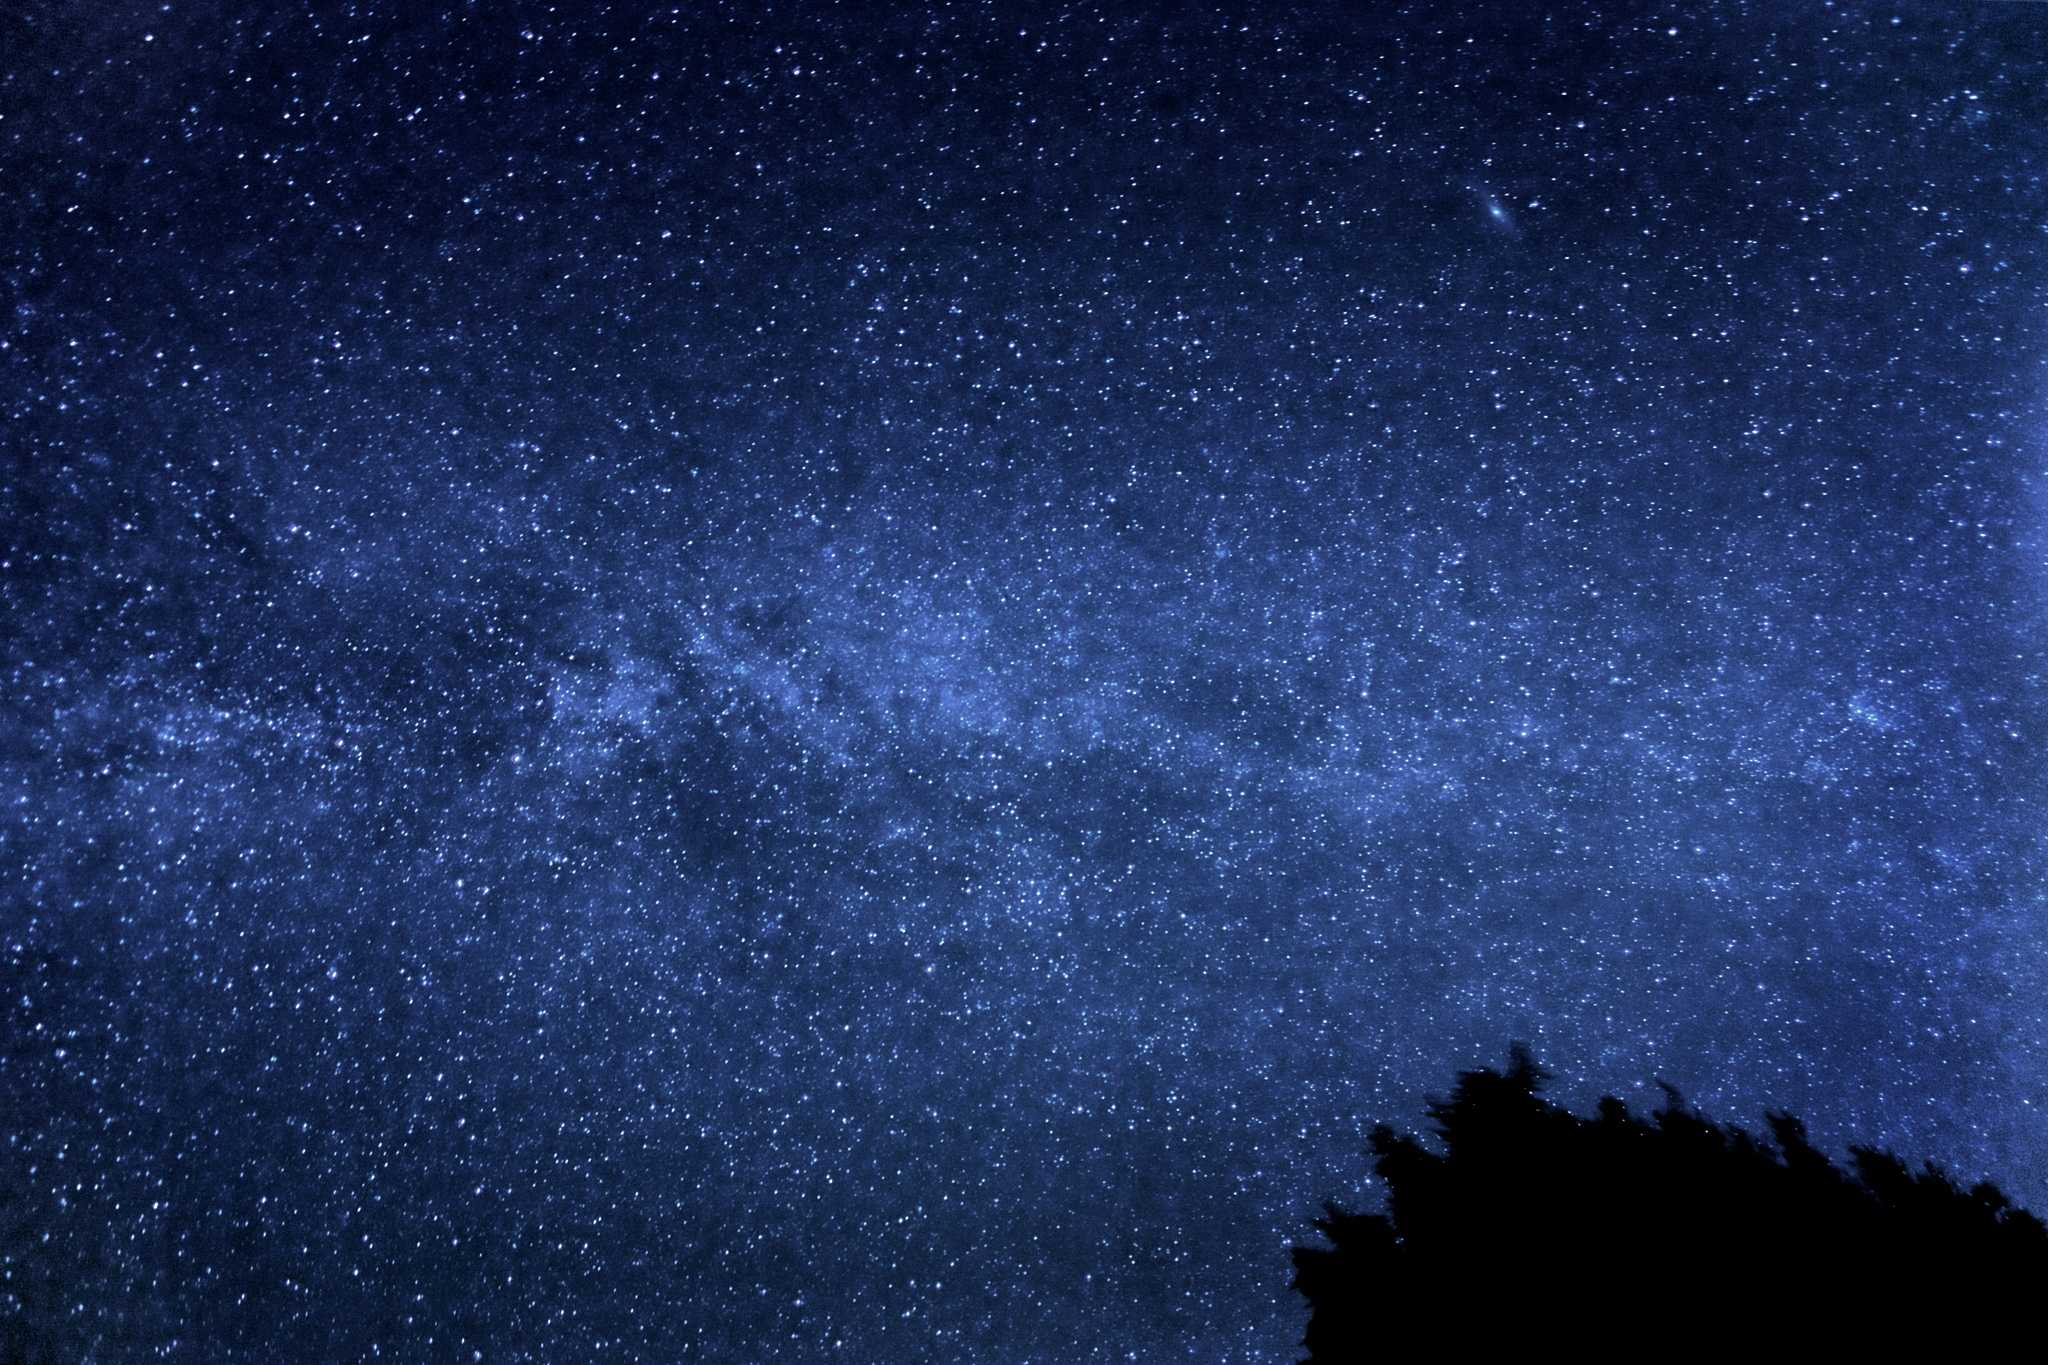 Coming Up on Campus: Public Stargazing event to celebrate International Astronomy Day